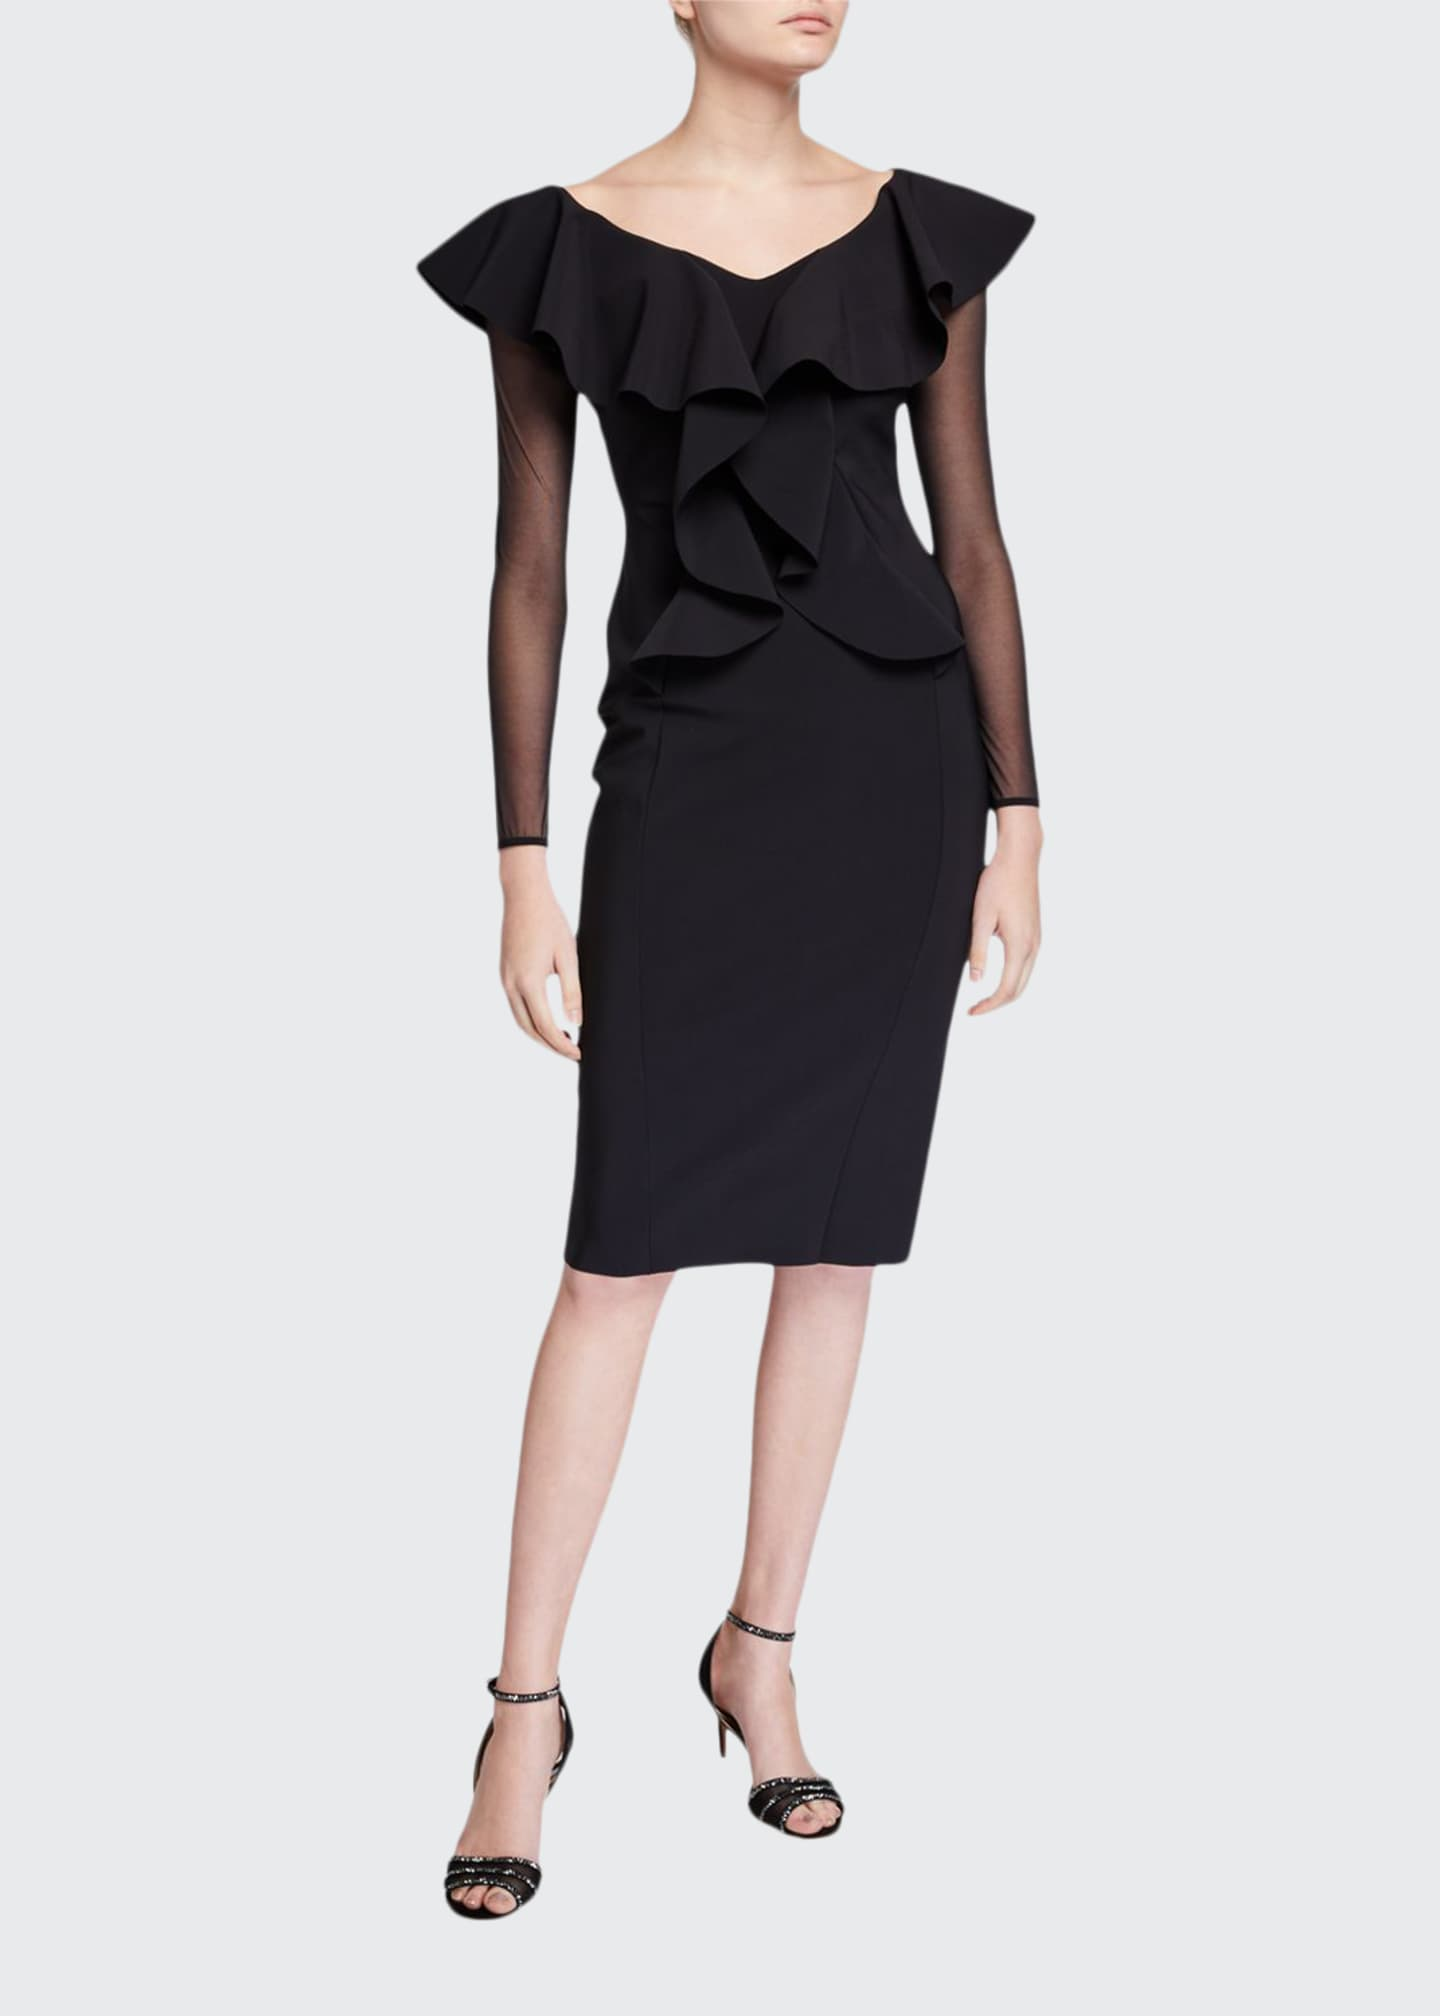 Chiara Boni La Petite Robe V-Neck Sheer Sleeve